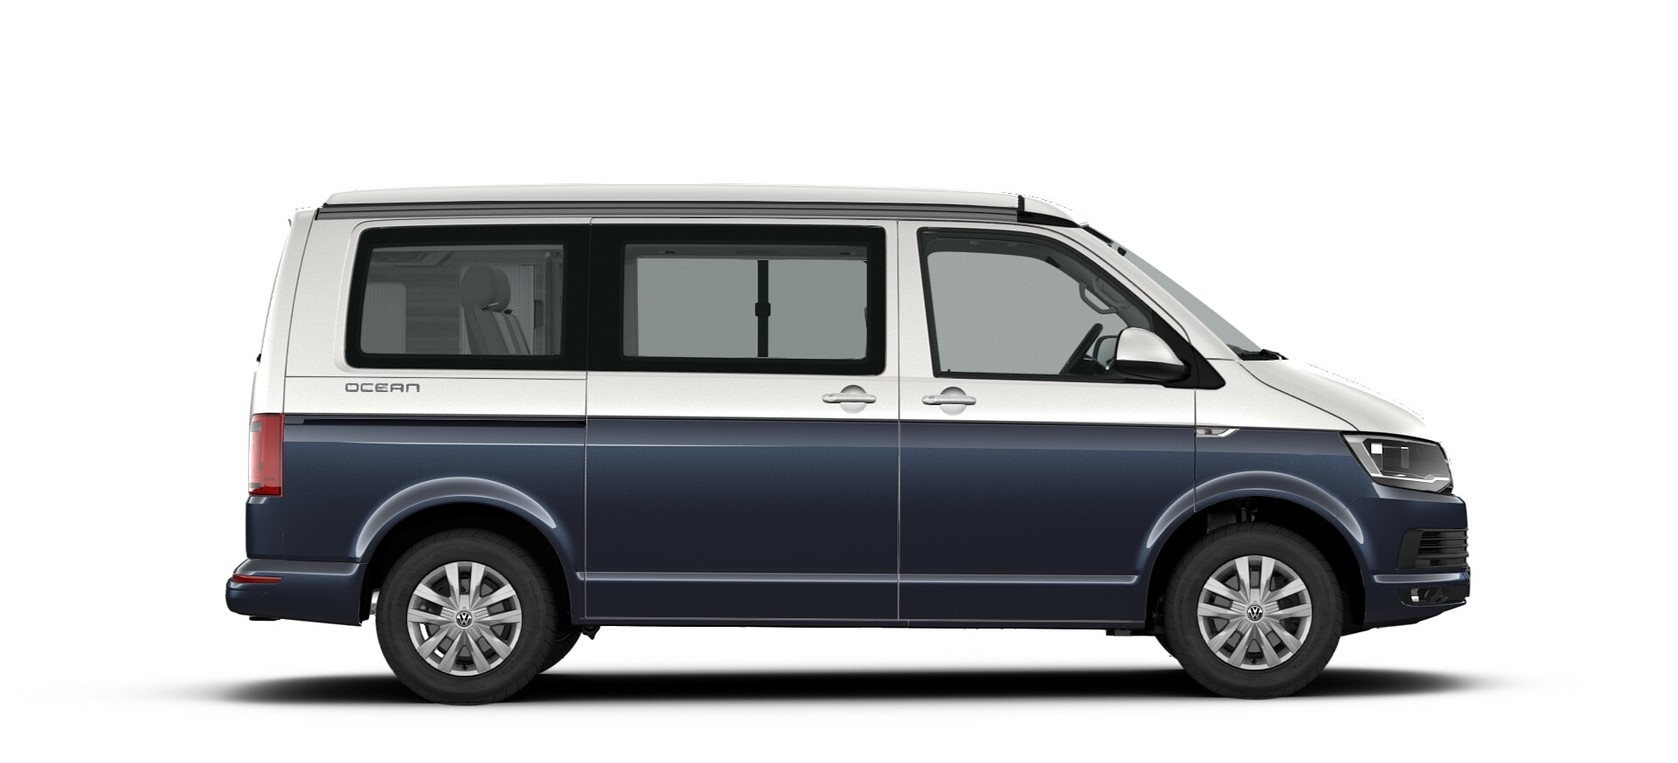 Starlight Blue/Candy White two tone metallic lak - Volkswagen California Ocean